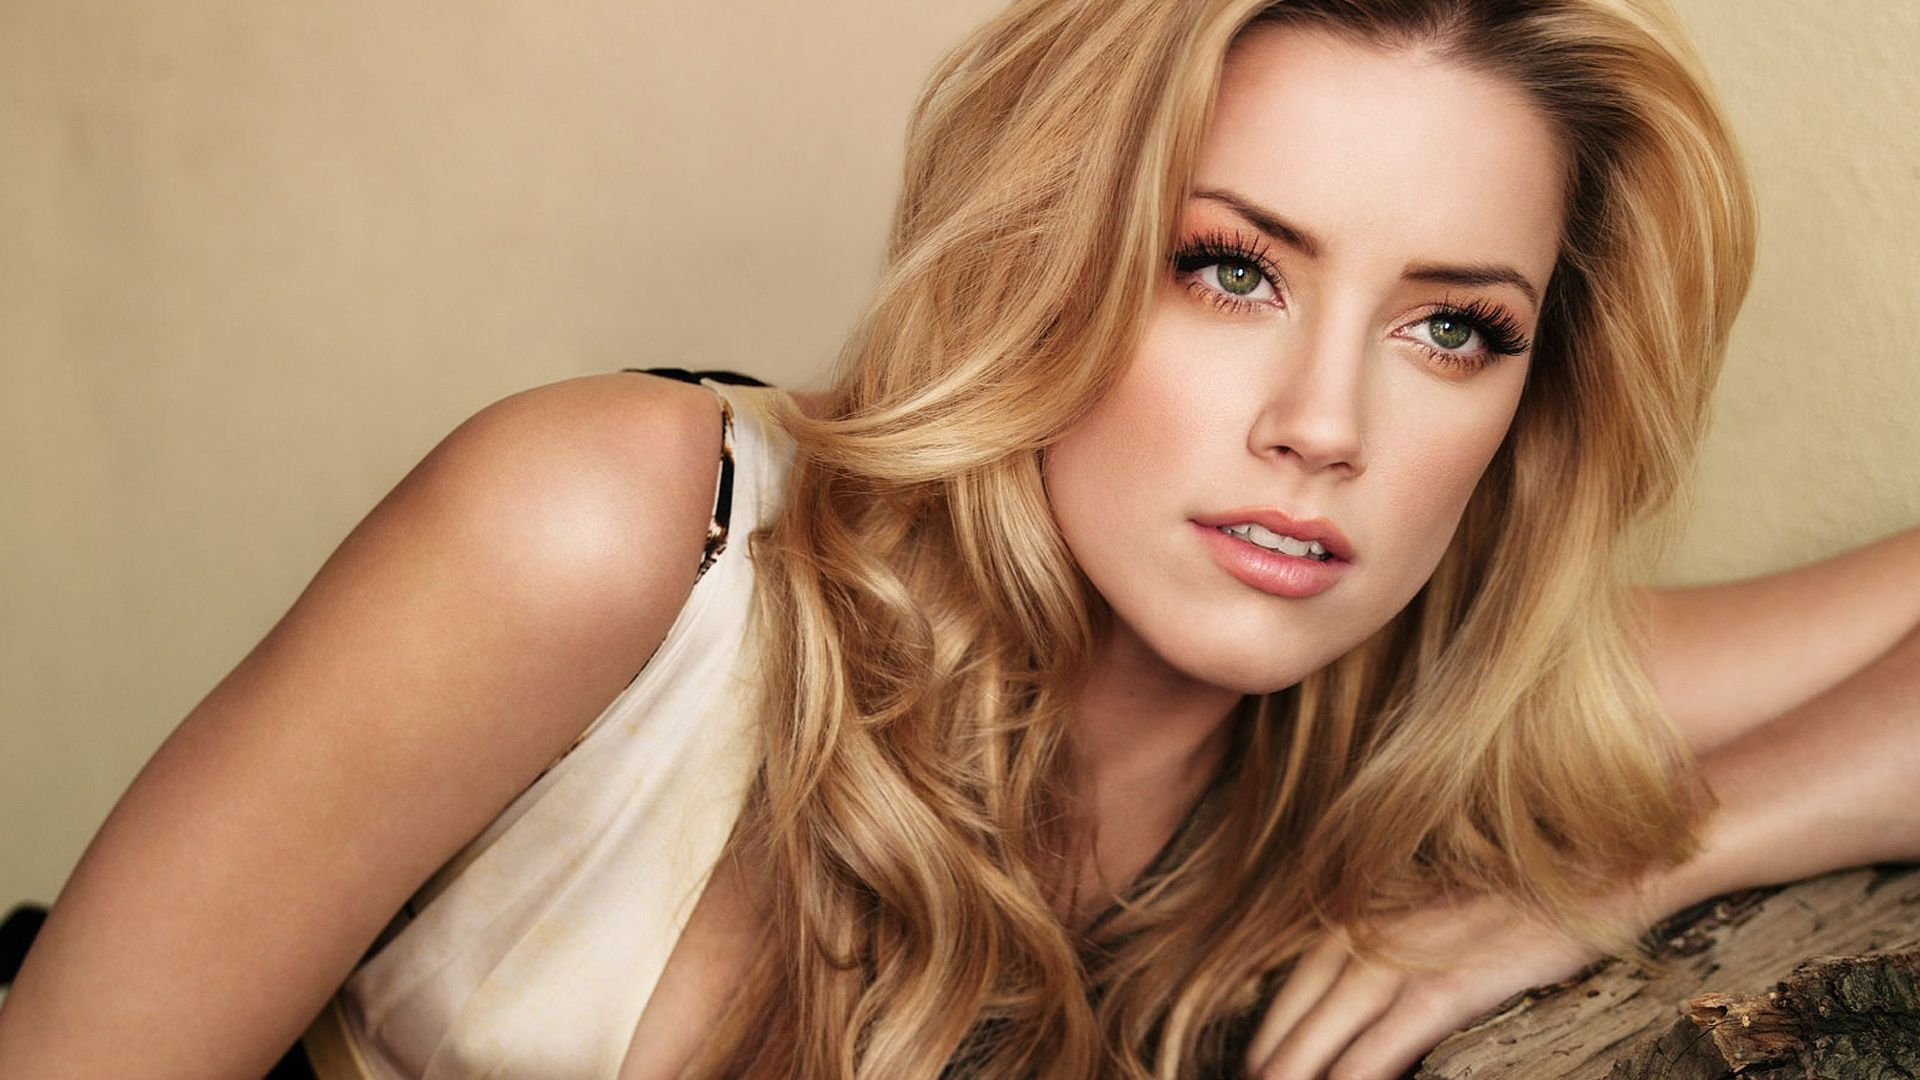 Amber Heard Wallpaper Amber Wallpaper Amber Heard Hot Amber Heard Beauty